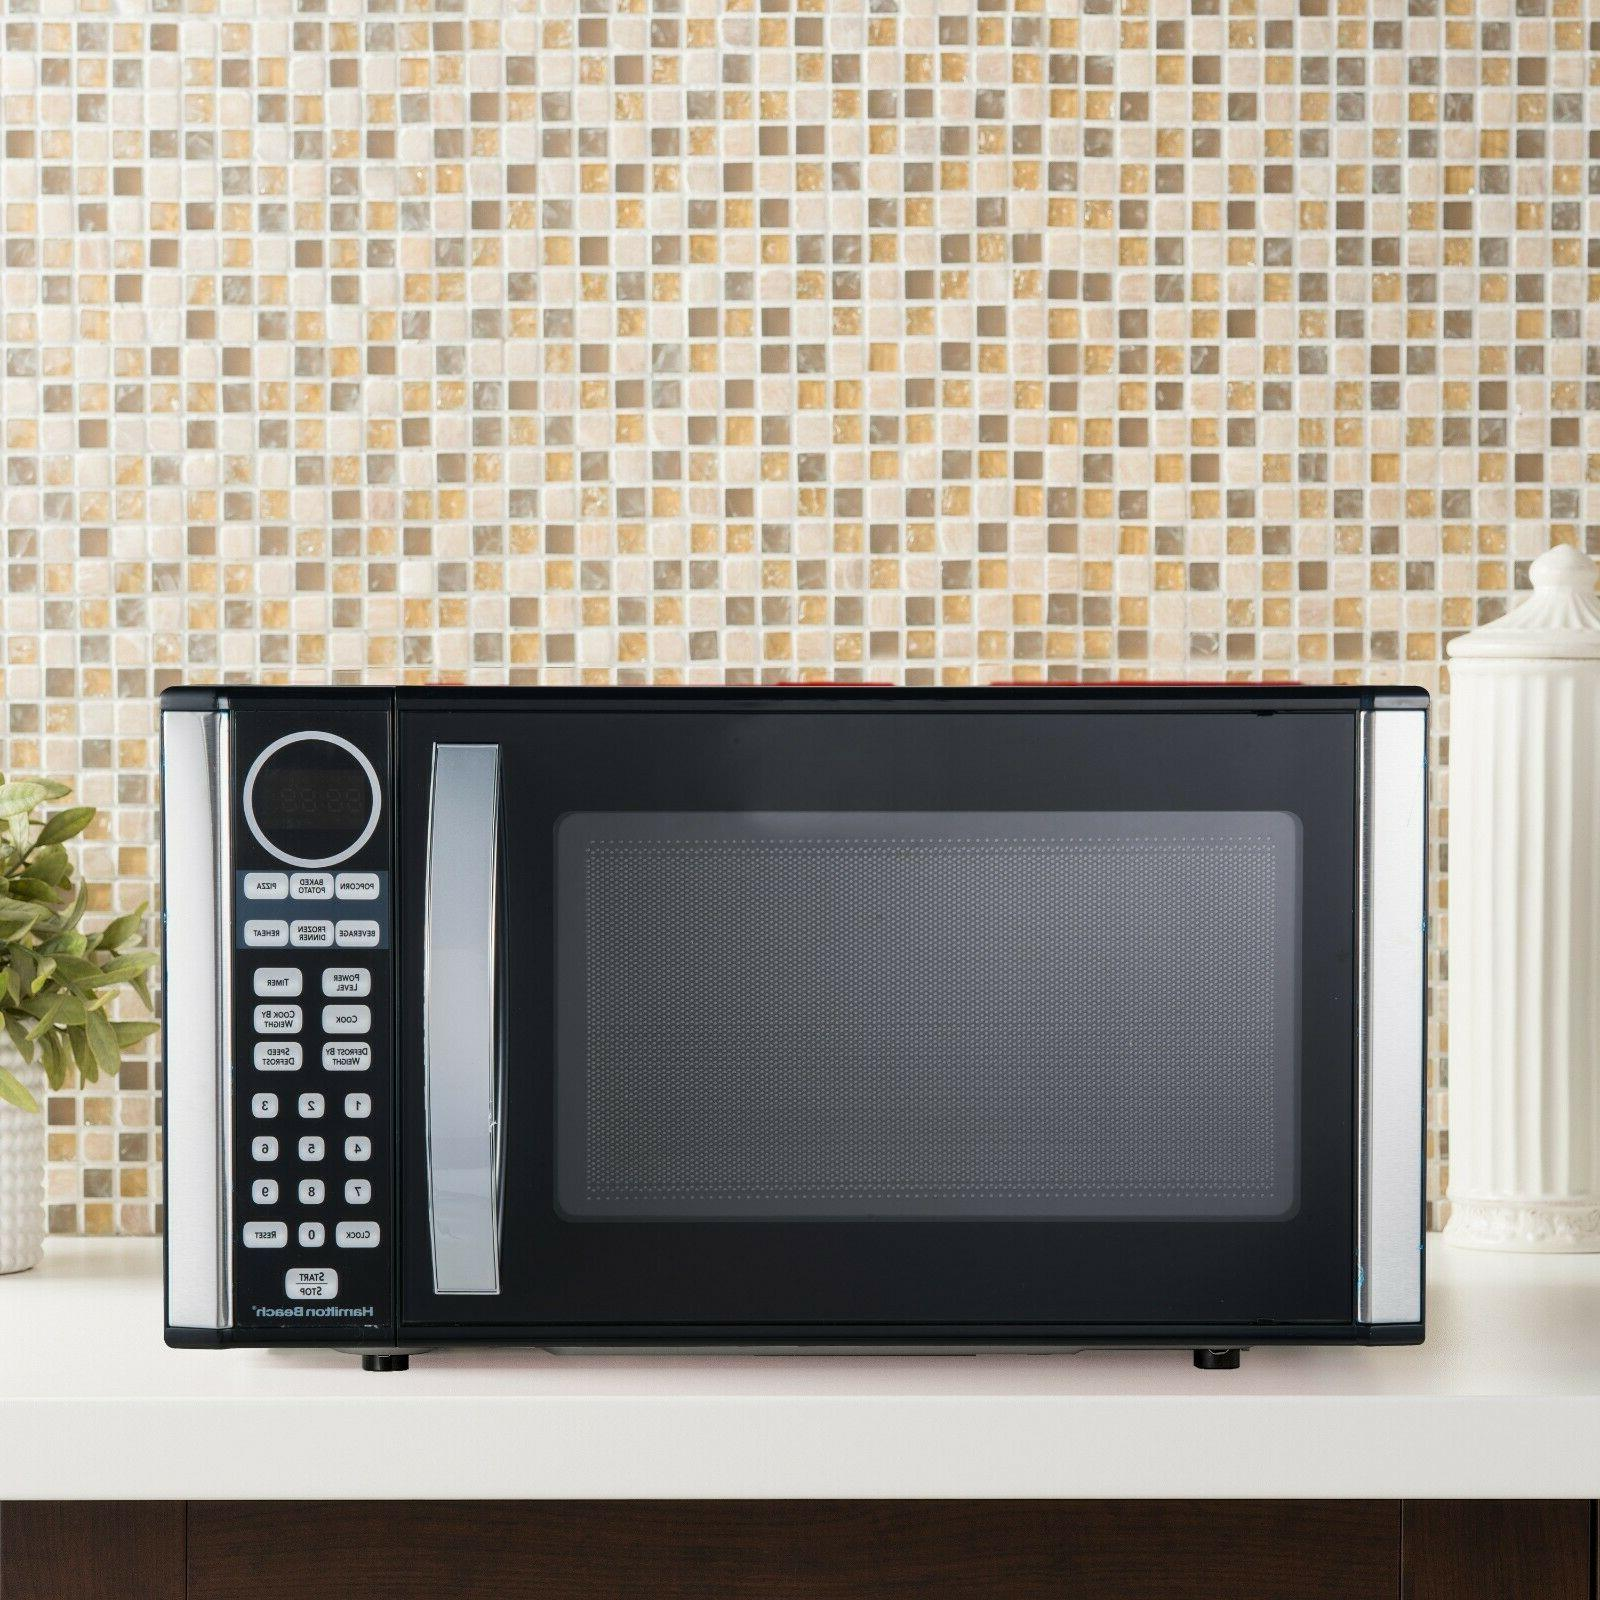 Hamilton Beach 1.3-cu. ft Microwave Oven Stainless Display